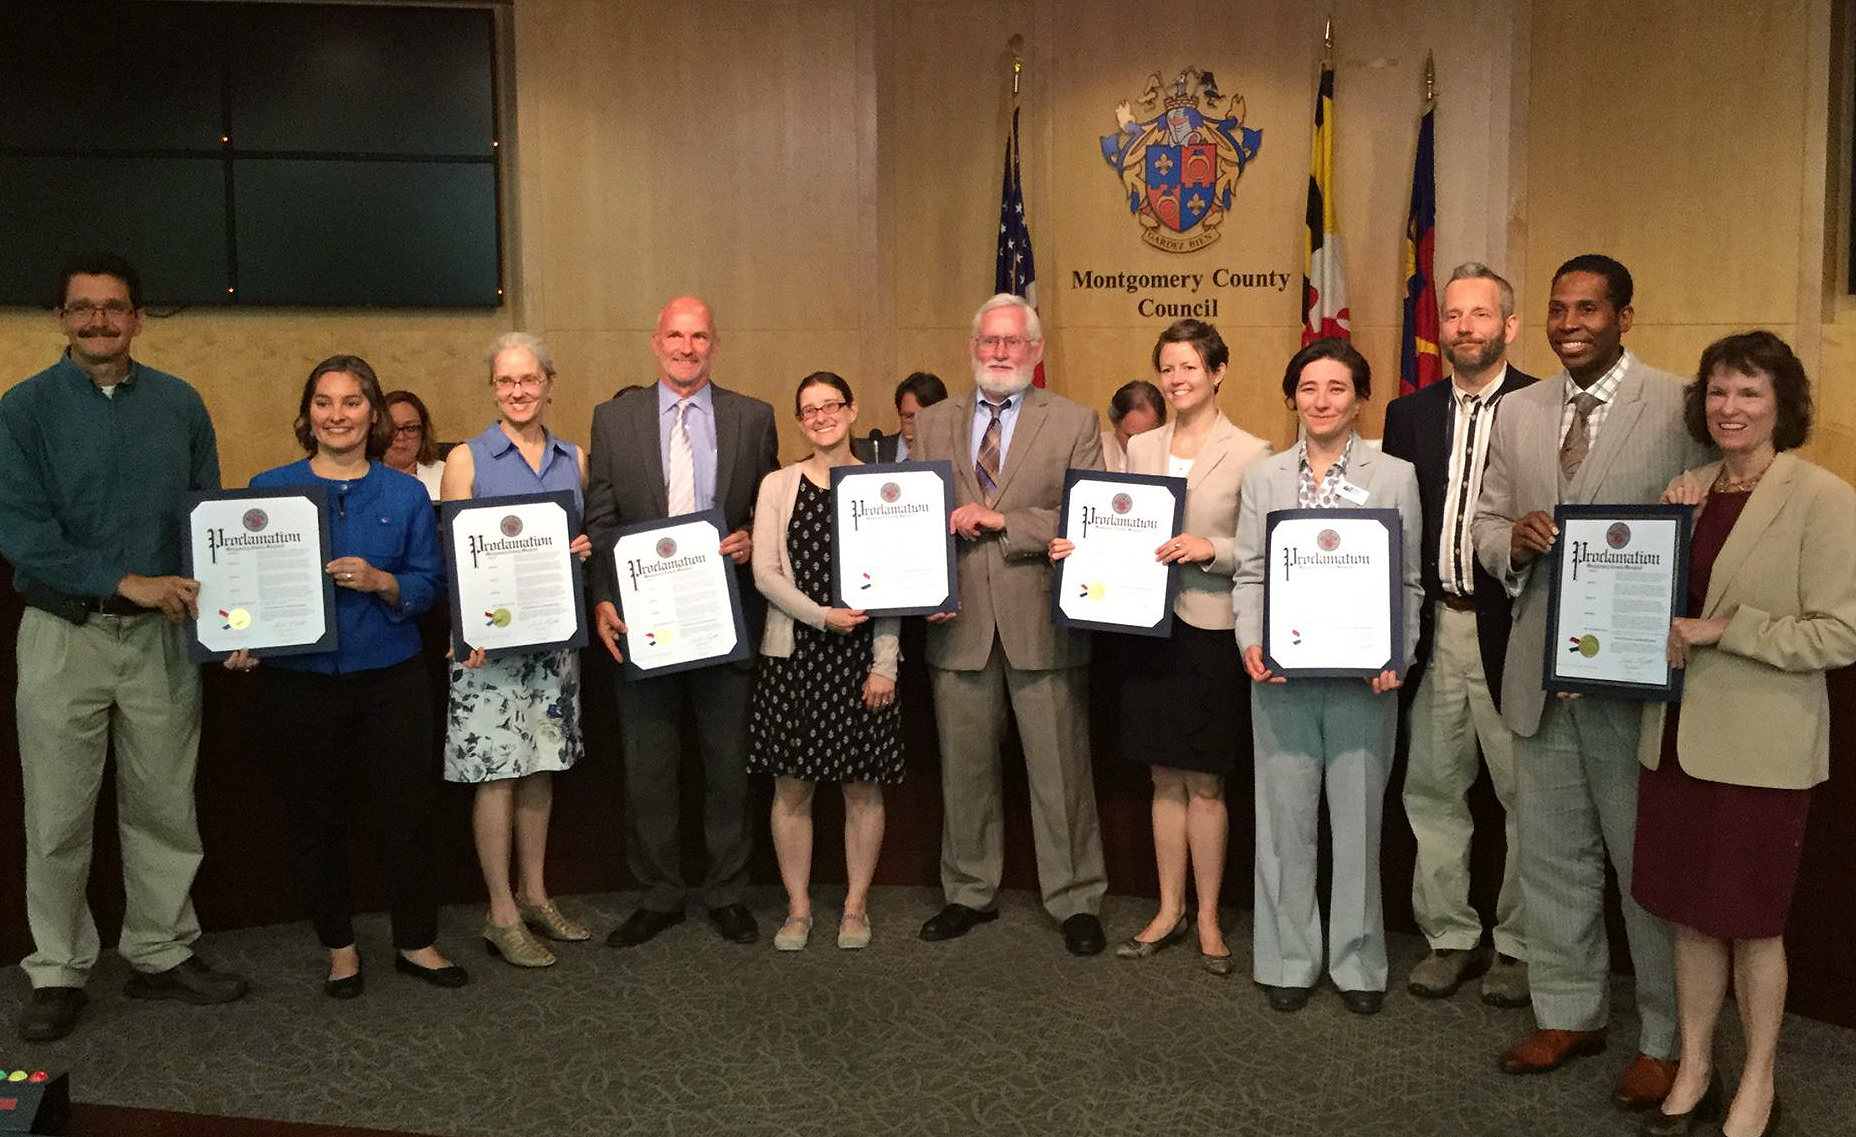 The County Council recognized FOSC's accomplishments at a ceremony on Sept 26, 2019.